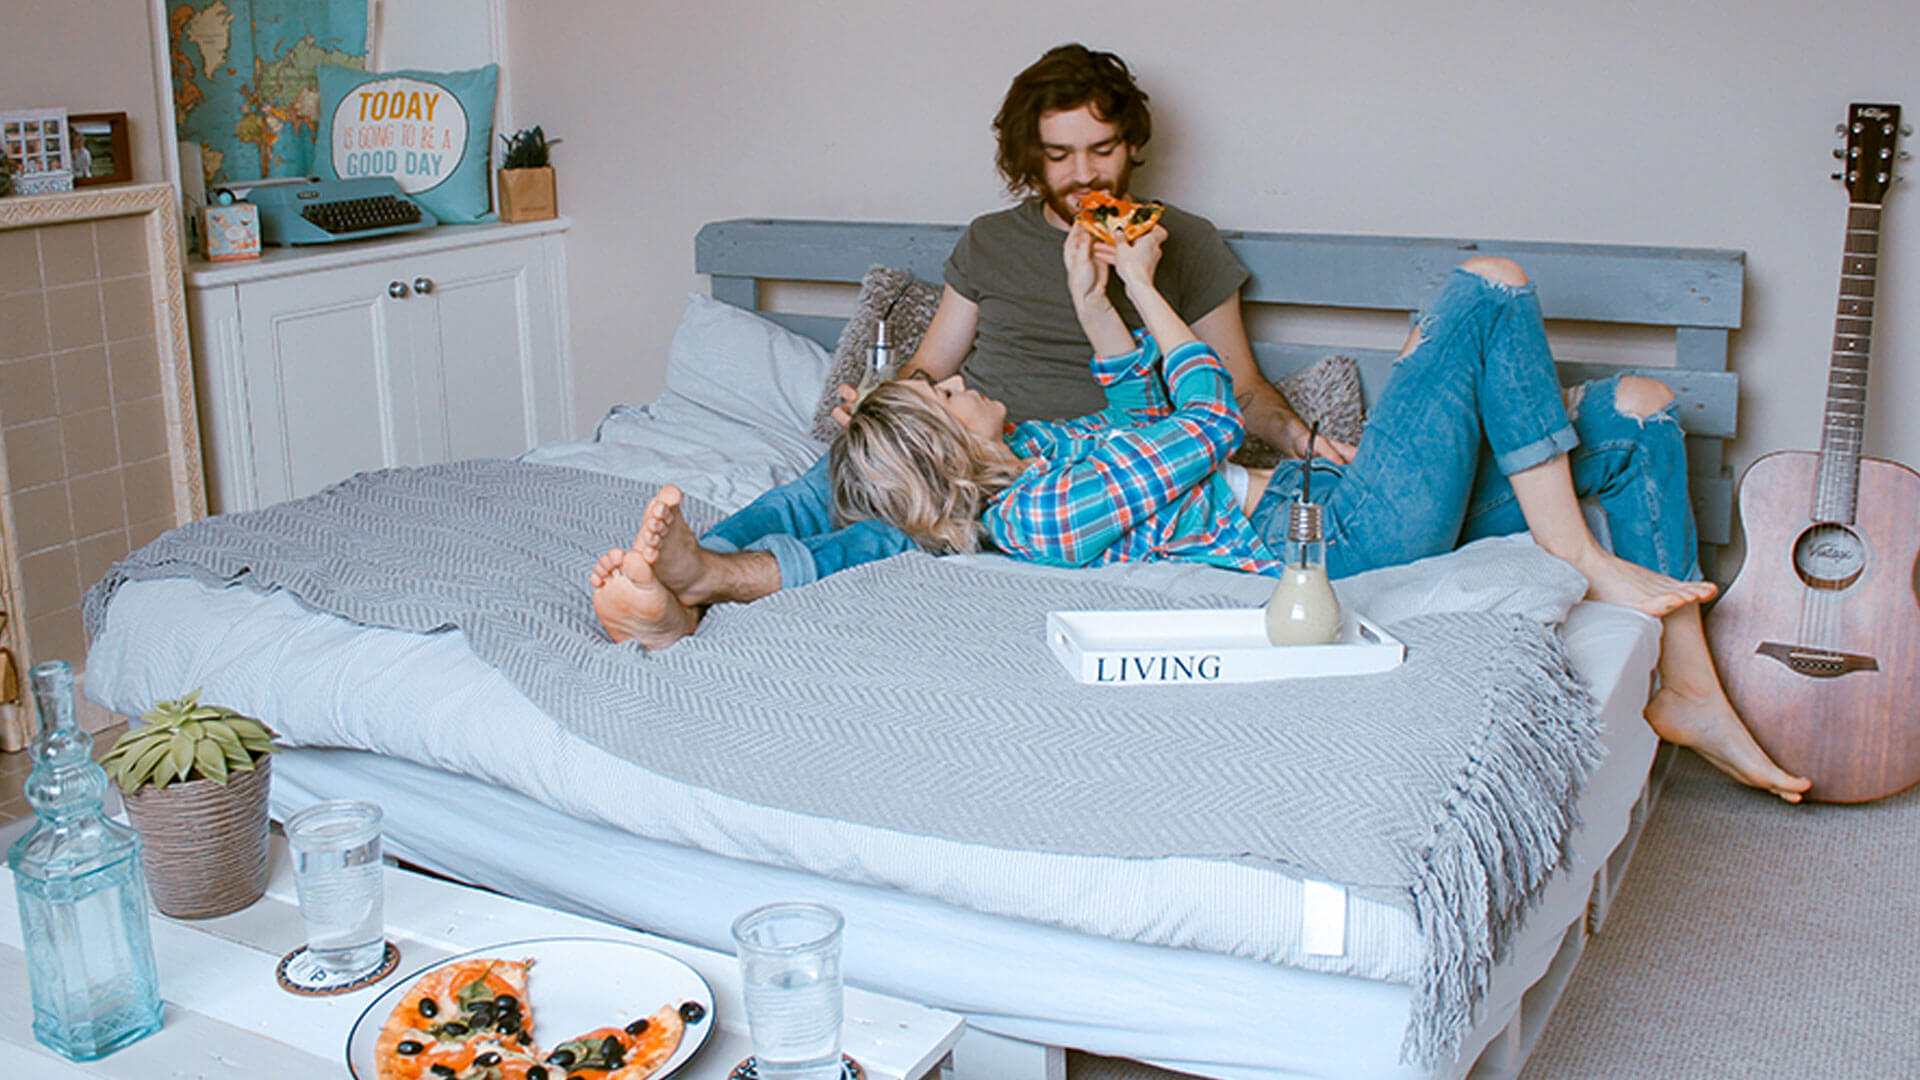 A couple laying on a bed, eating pizza.